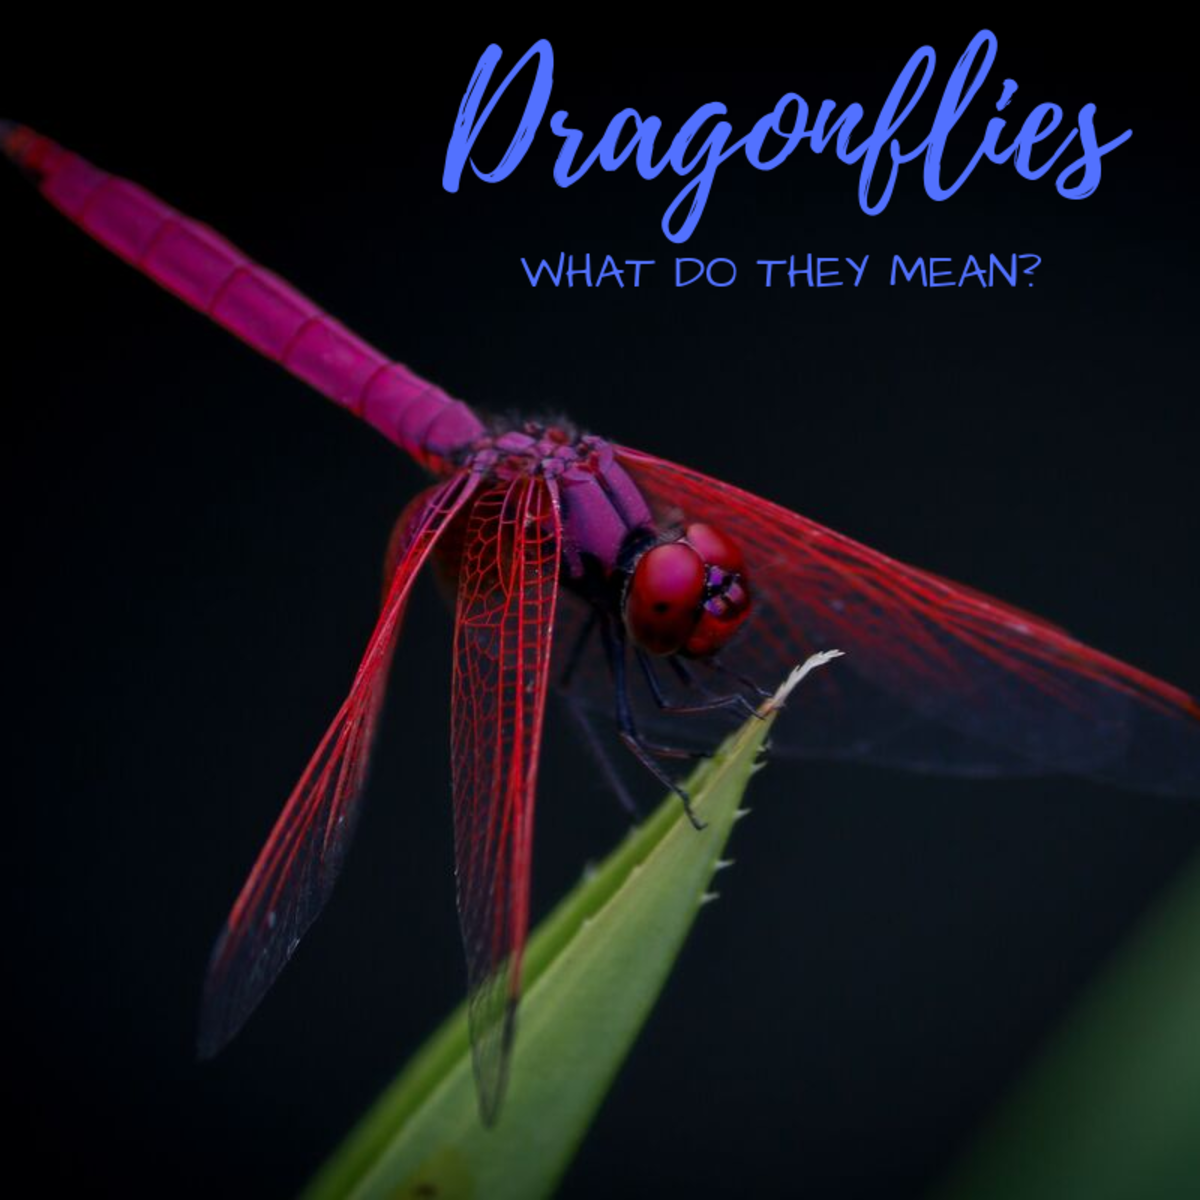 Dragonfly Facts, Symbolism, Meanings, and Photos